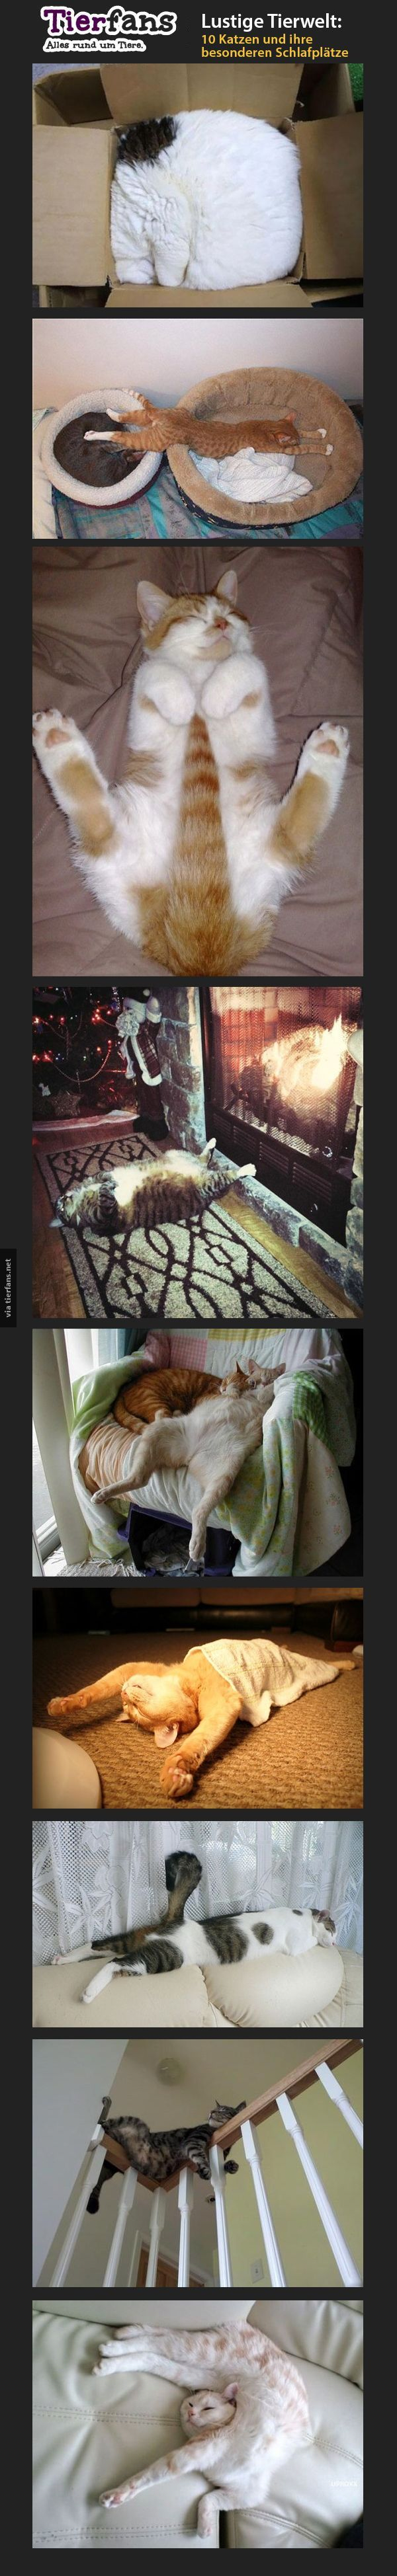 20 Lazy Cats That Will Make You LOL – Cats In Care